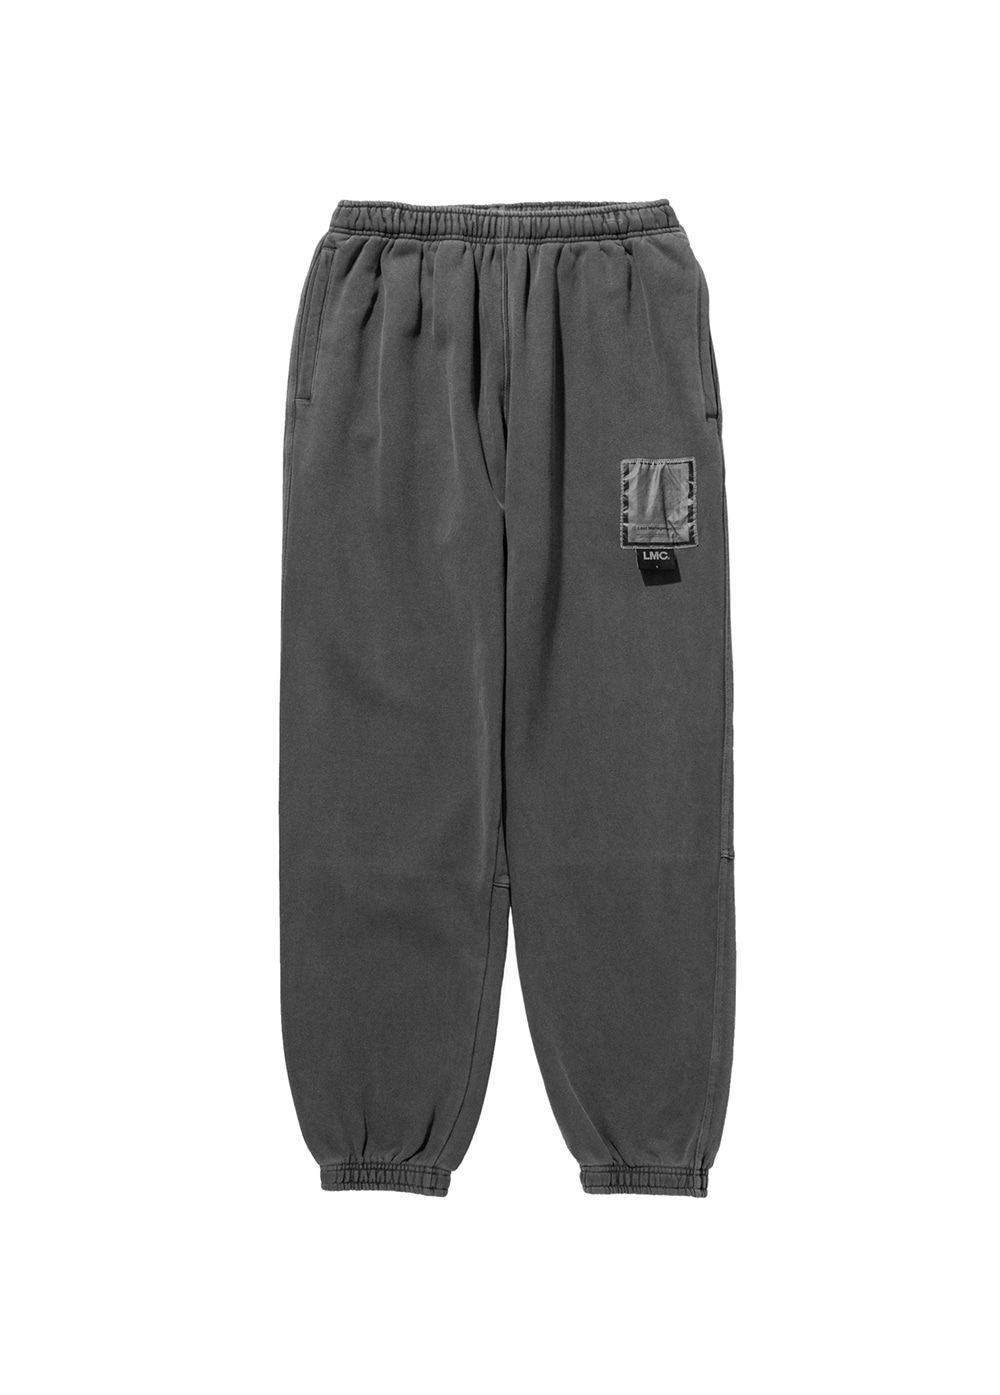 LMC LABEL SWEAT PANTS dk gray